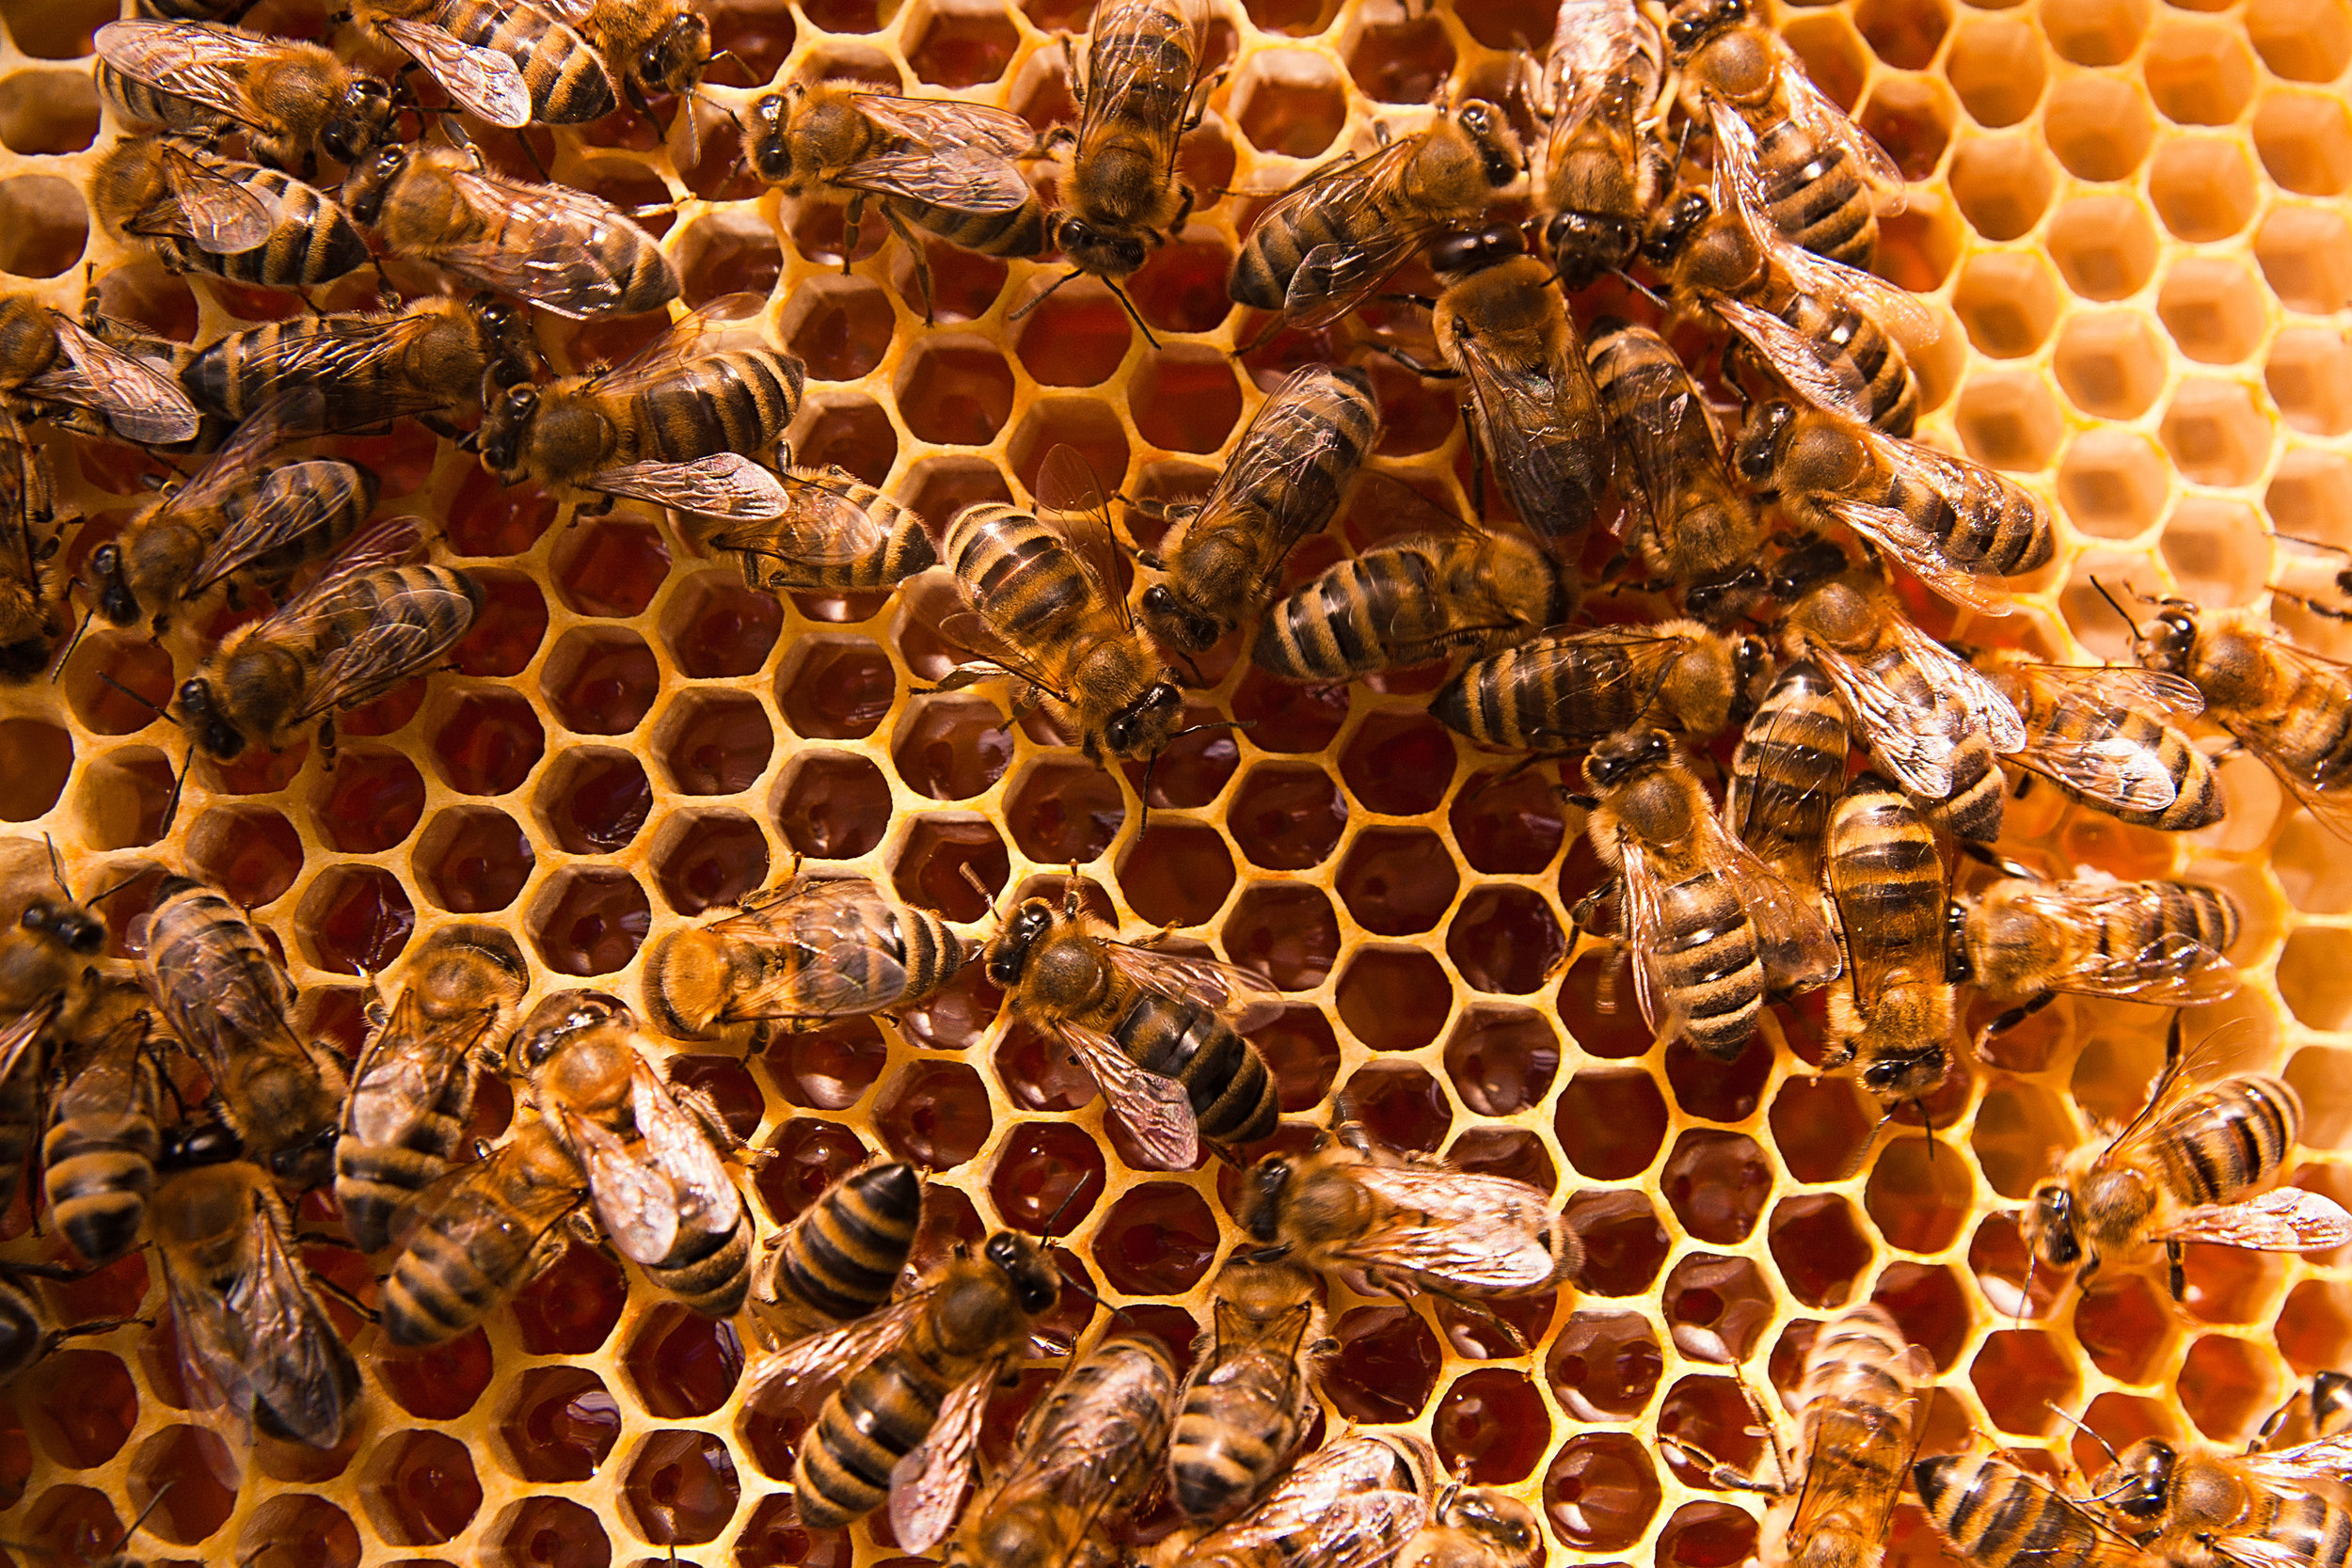 Open 7 days - View a live bee colony through clear acrylic hive walls, inside our observation room.